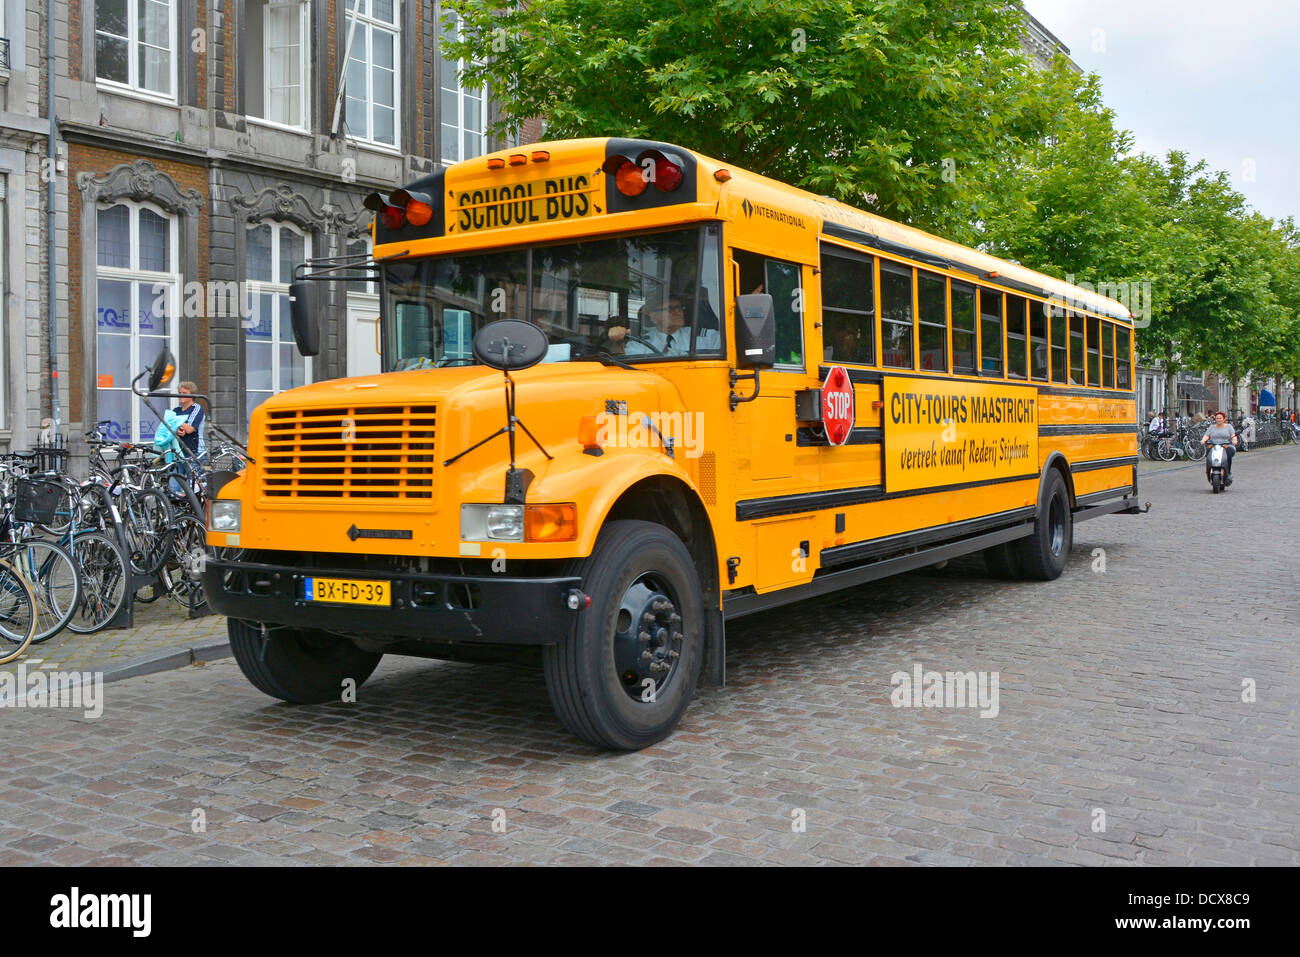 Maastricht yellow American school bus adapted for city sightseeing tours of Limburg Netherlands Europe - Stock Image